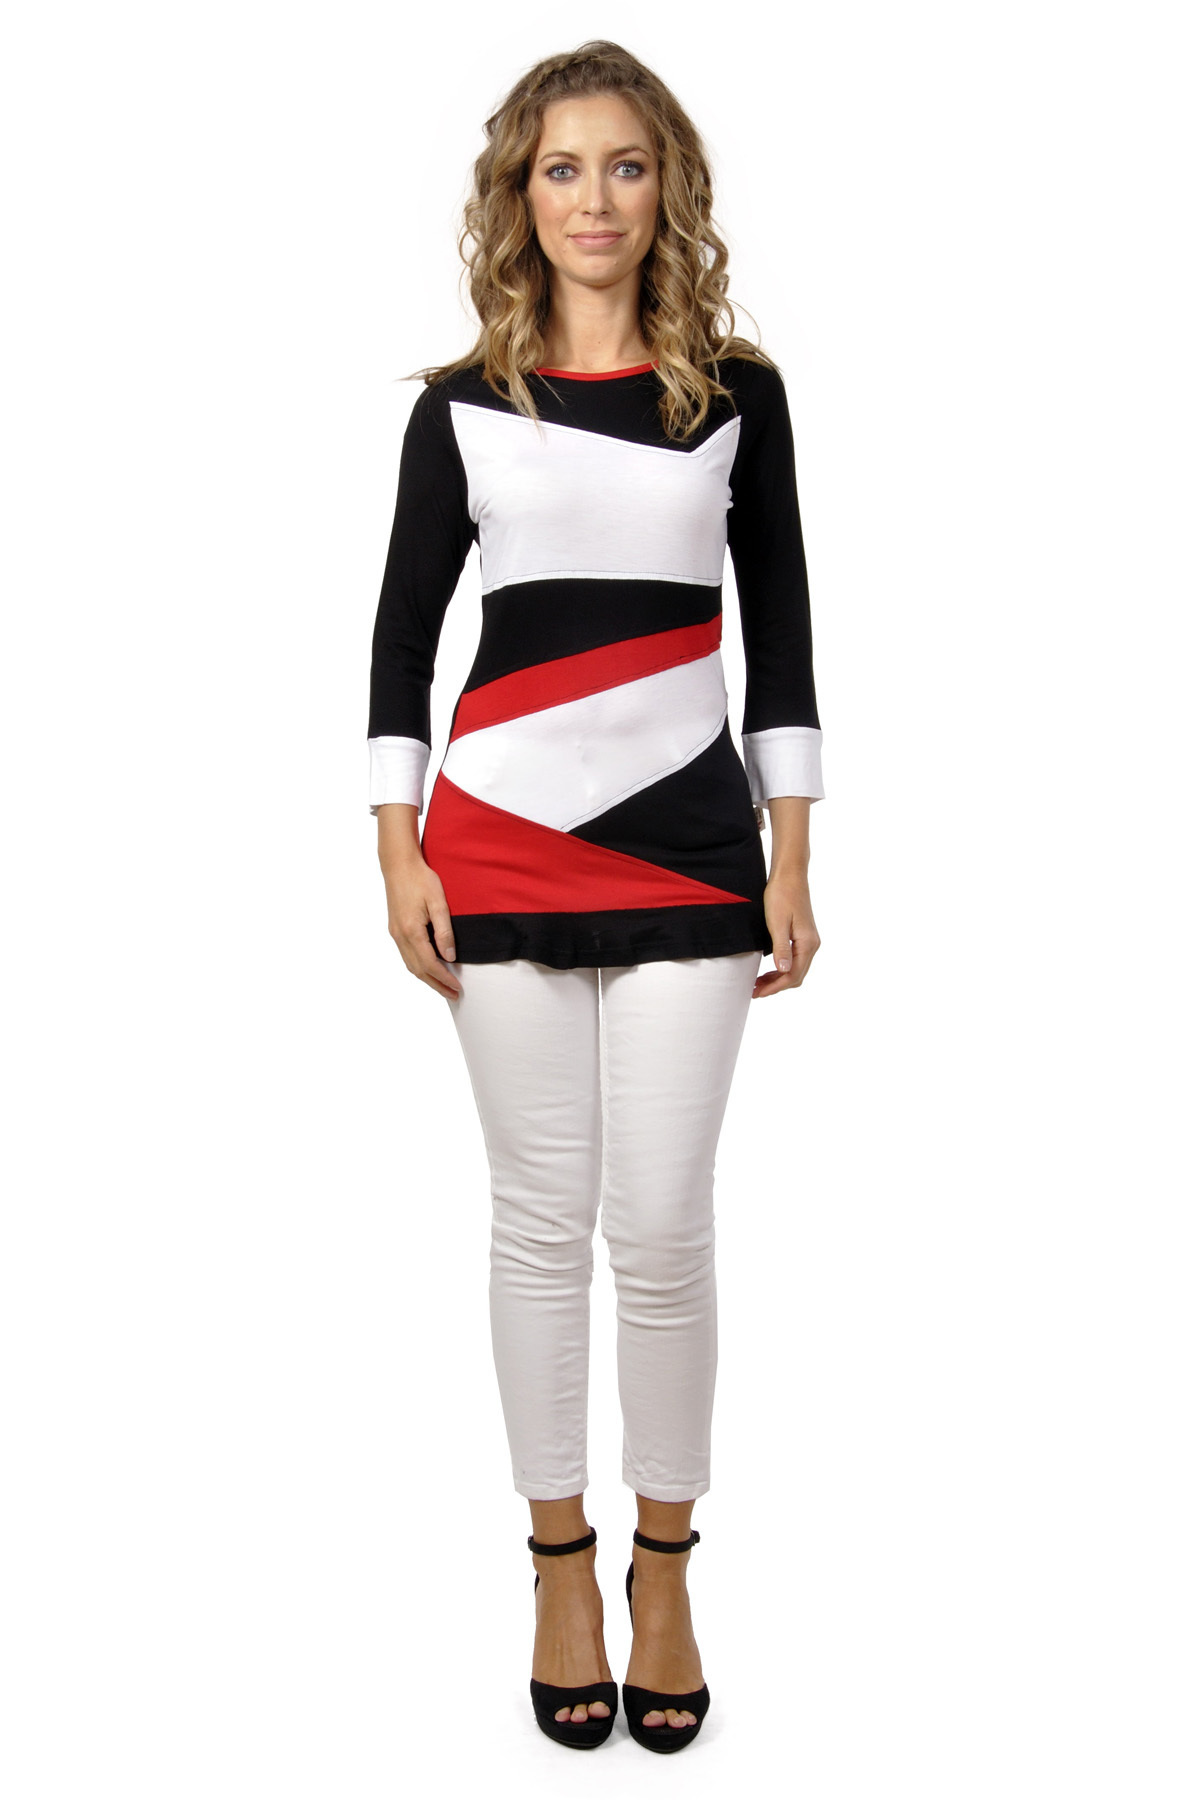 Savage Culture: Dress Me Up Color Block Tunic Suzette (1 Left!) SAVAGE_30060